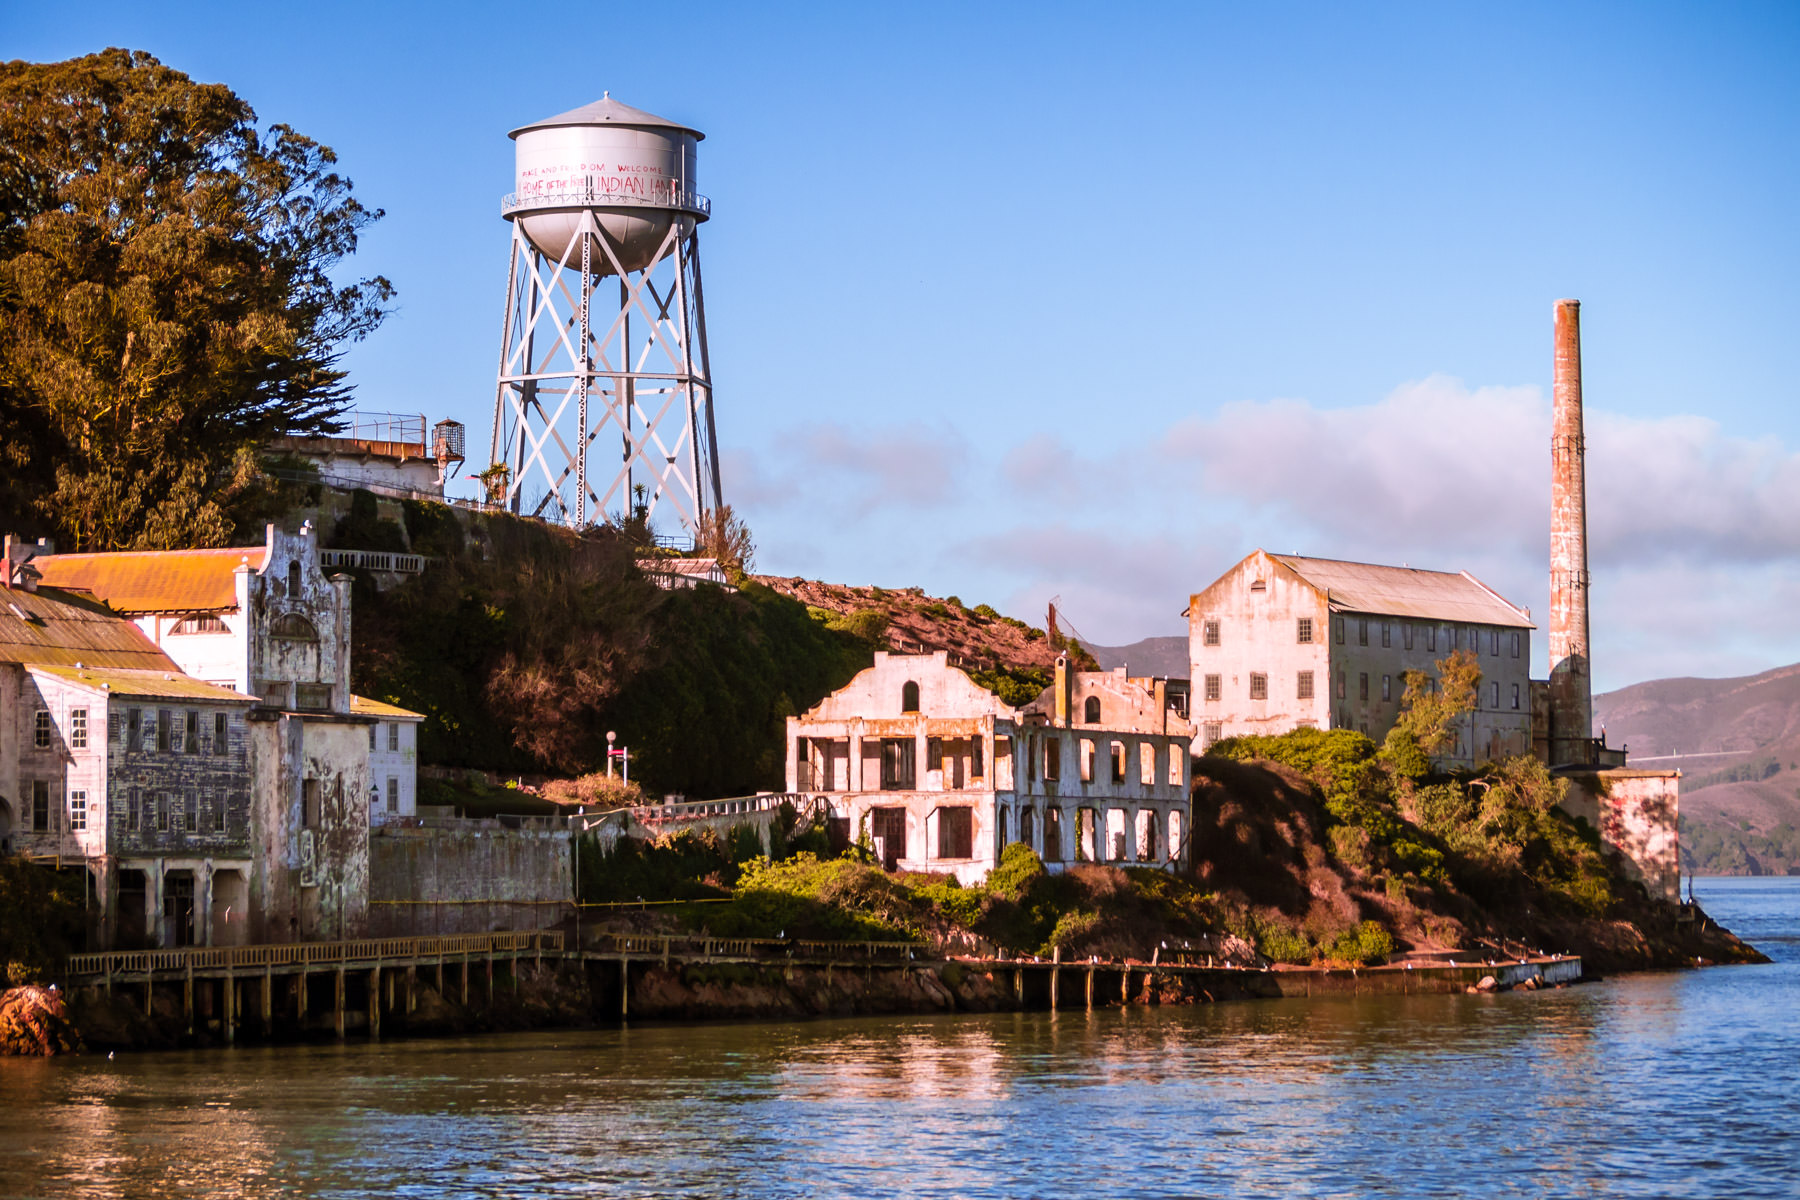 The ruins ofAlcatraz Federal Penitentiary rise from San Francisco Bay.